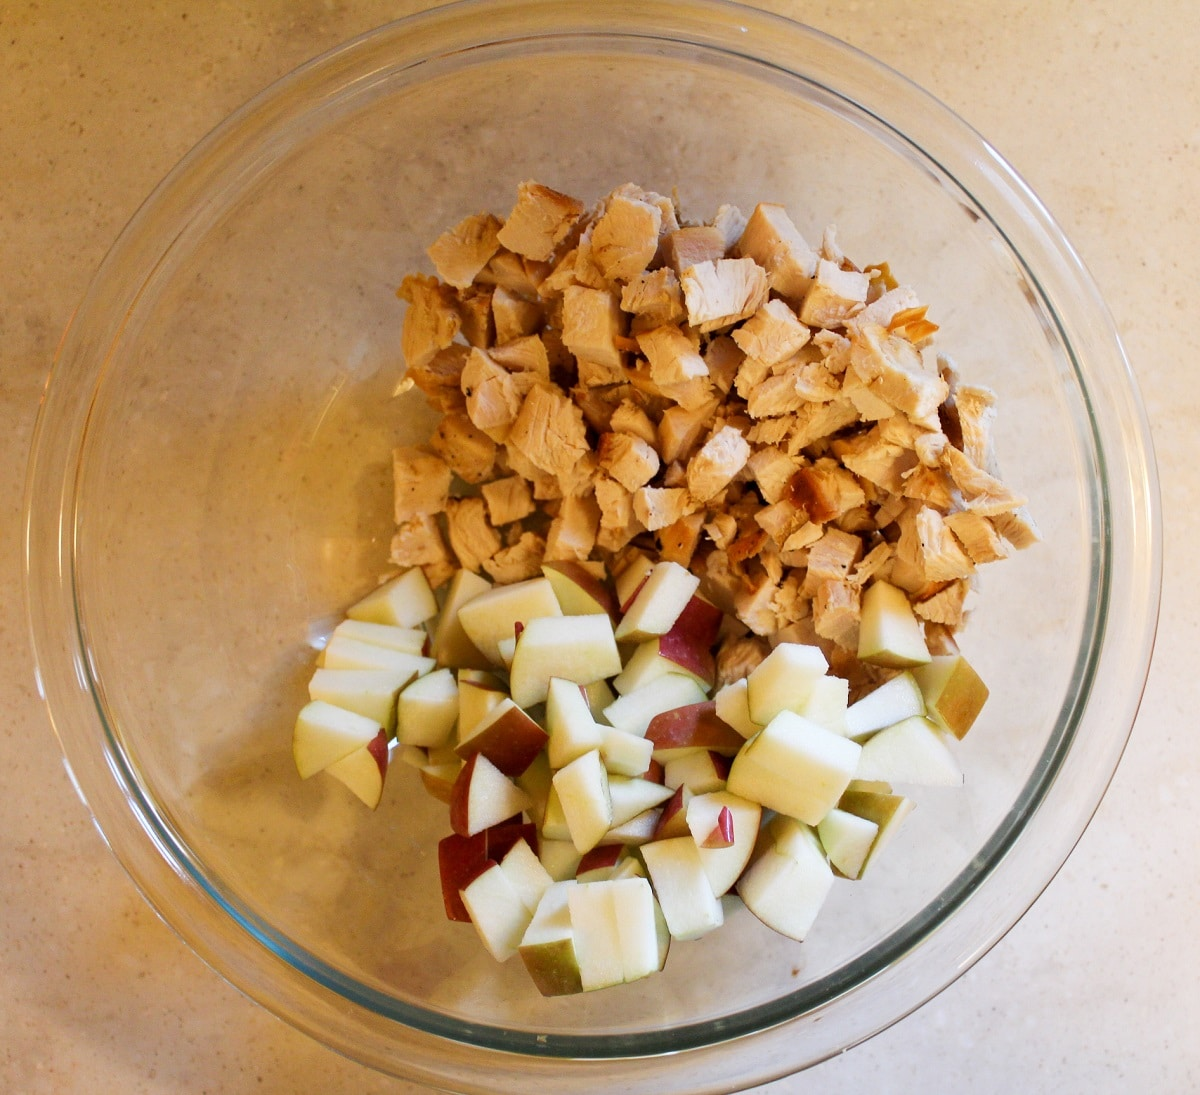 chopped turkey and apple in a bowl